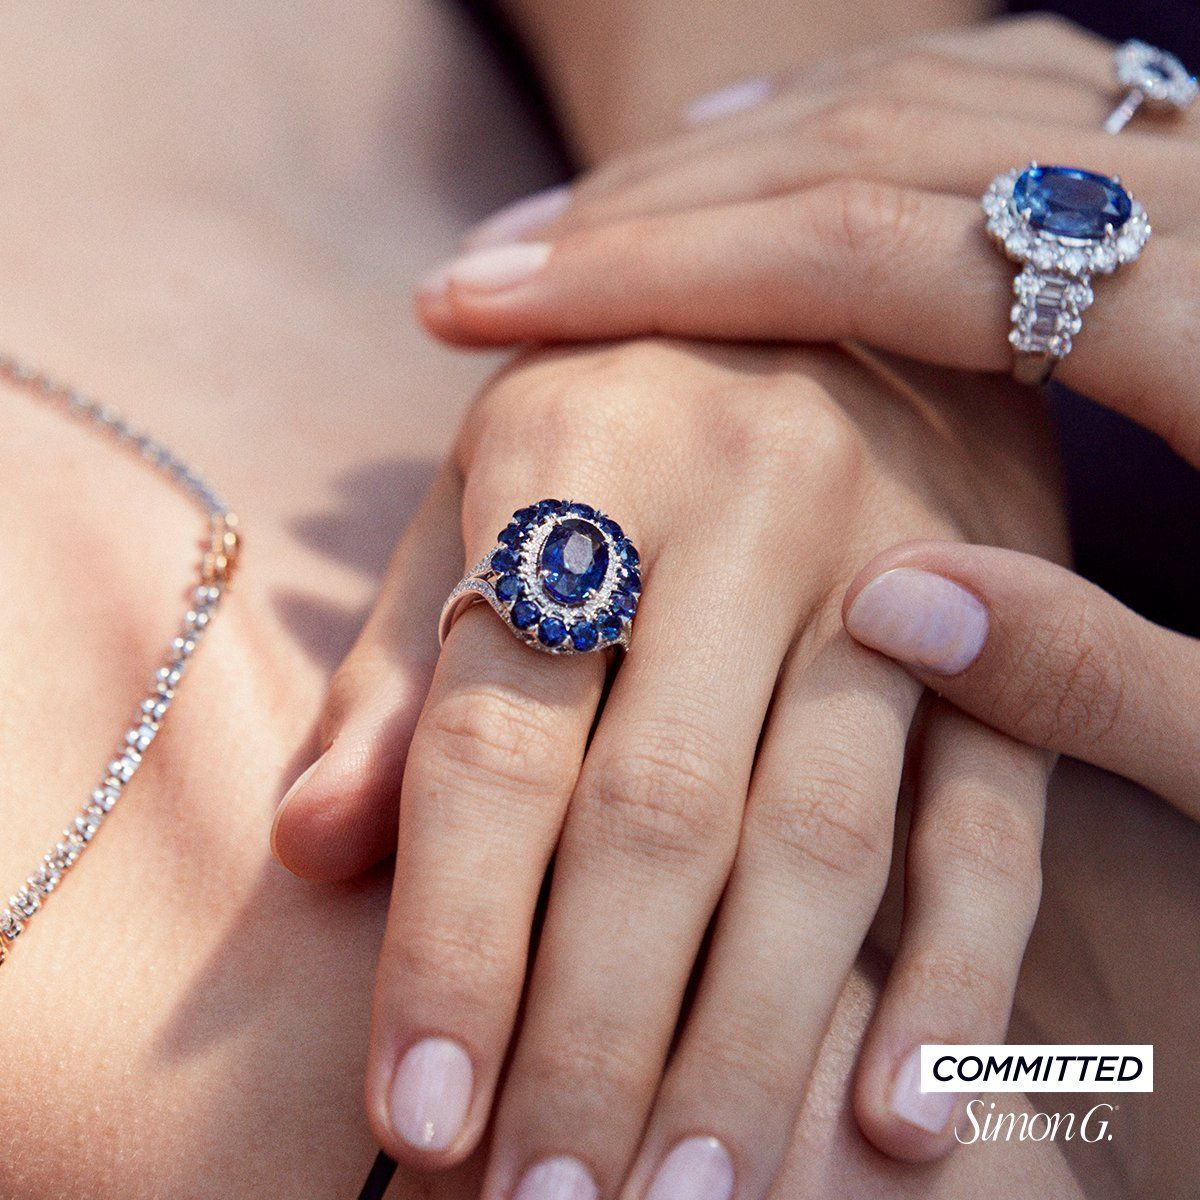 Sapphires and Simon G. Jewelry a winning combination